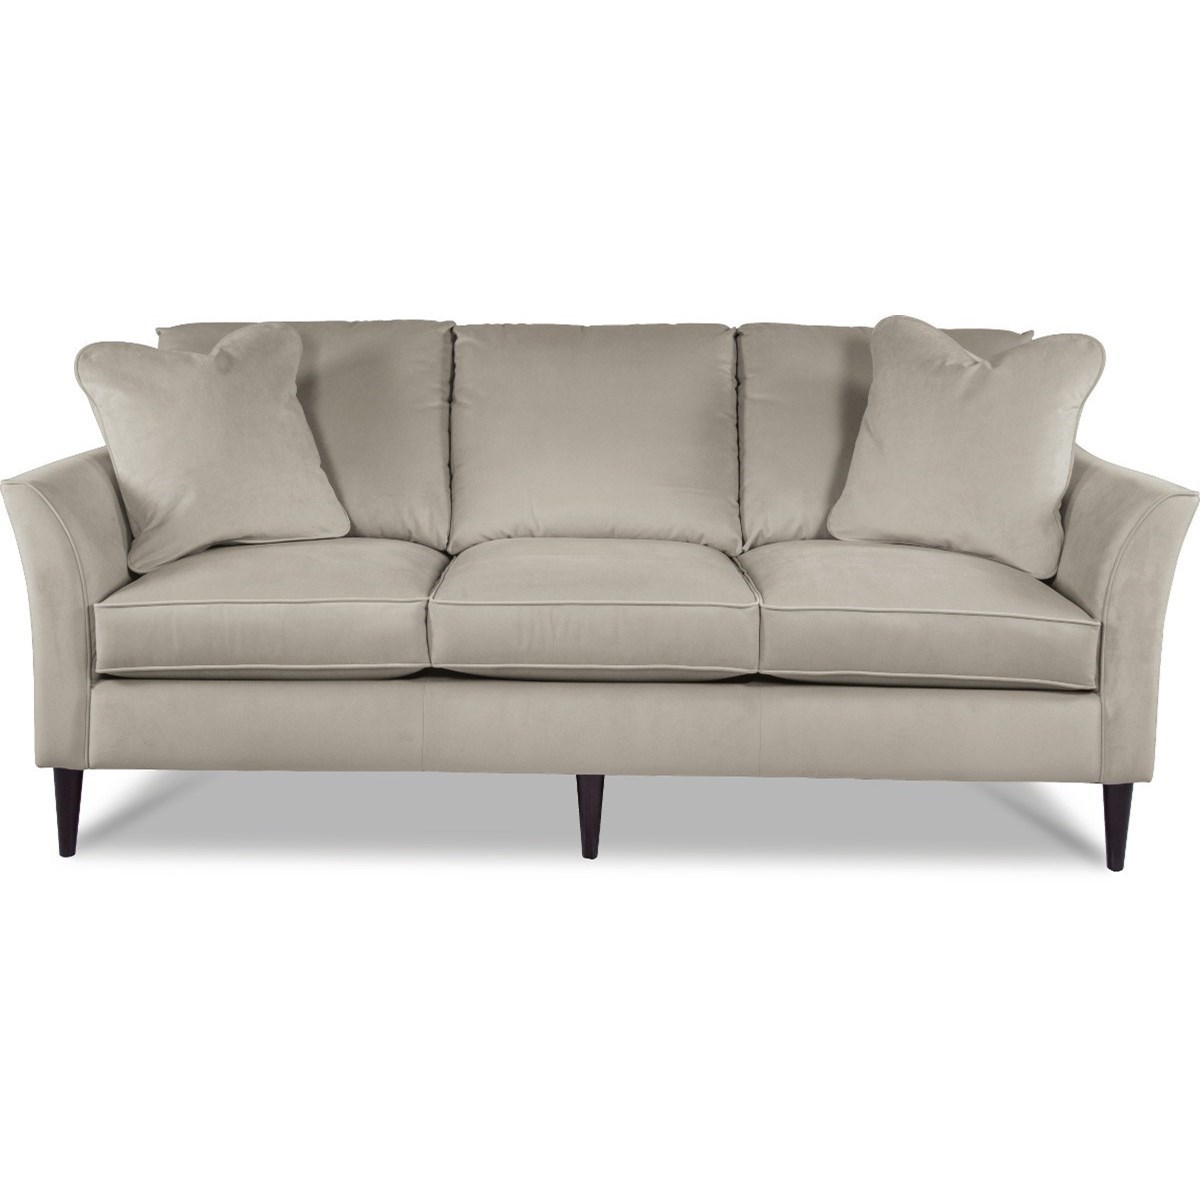 Contemporary Couch La Z Boy Violet Contemporary Sofa With Flared Arms And Comfortcore